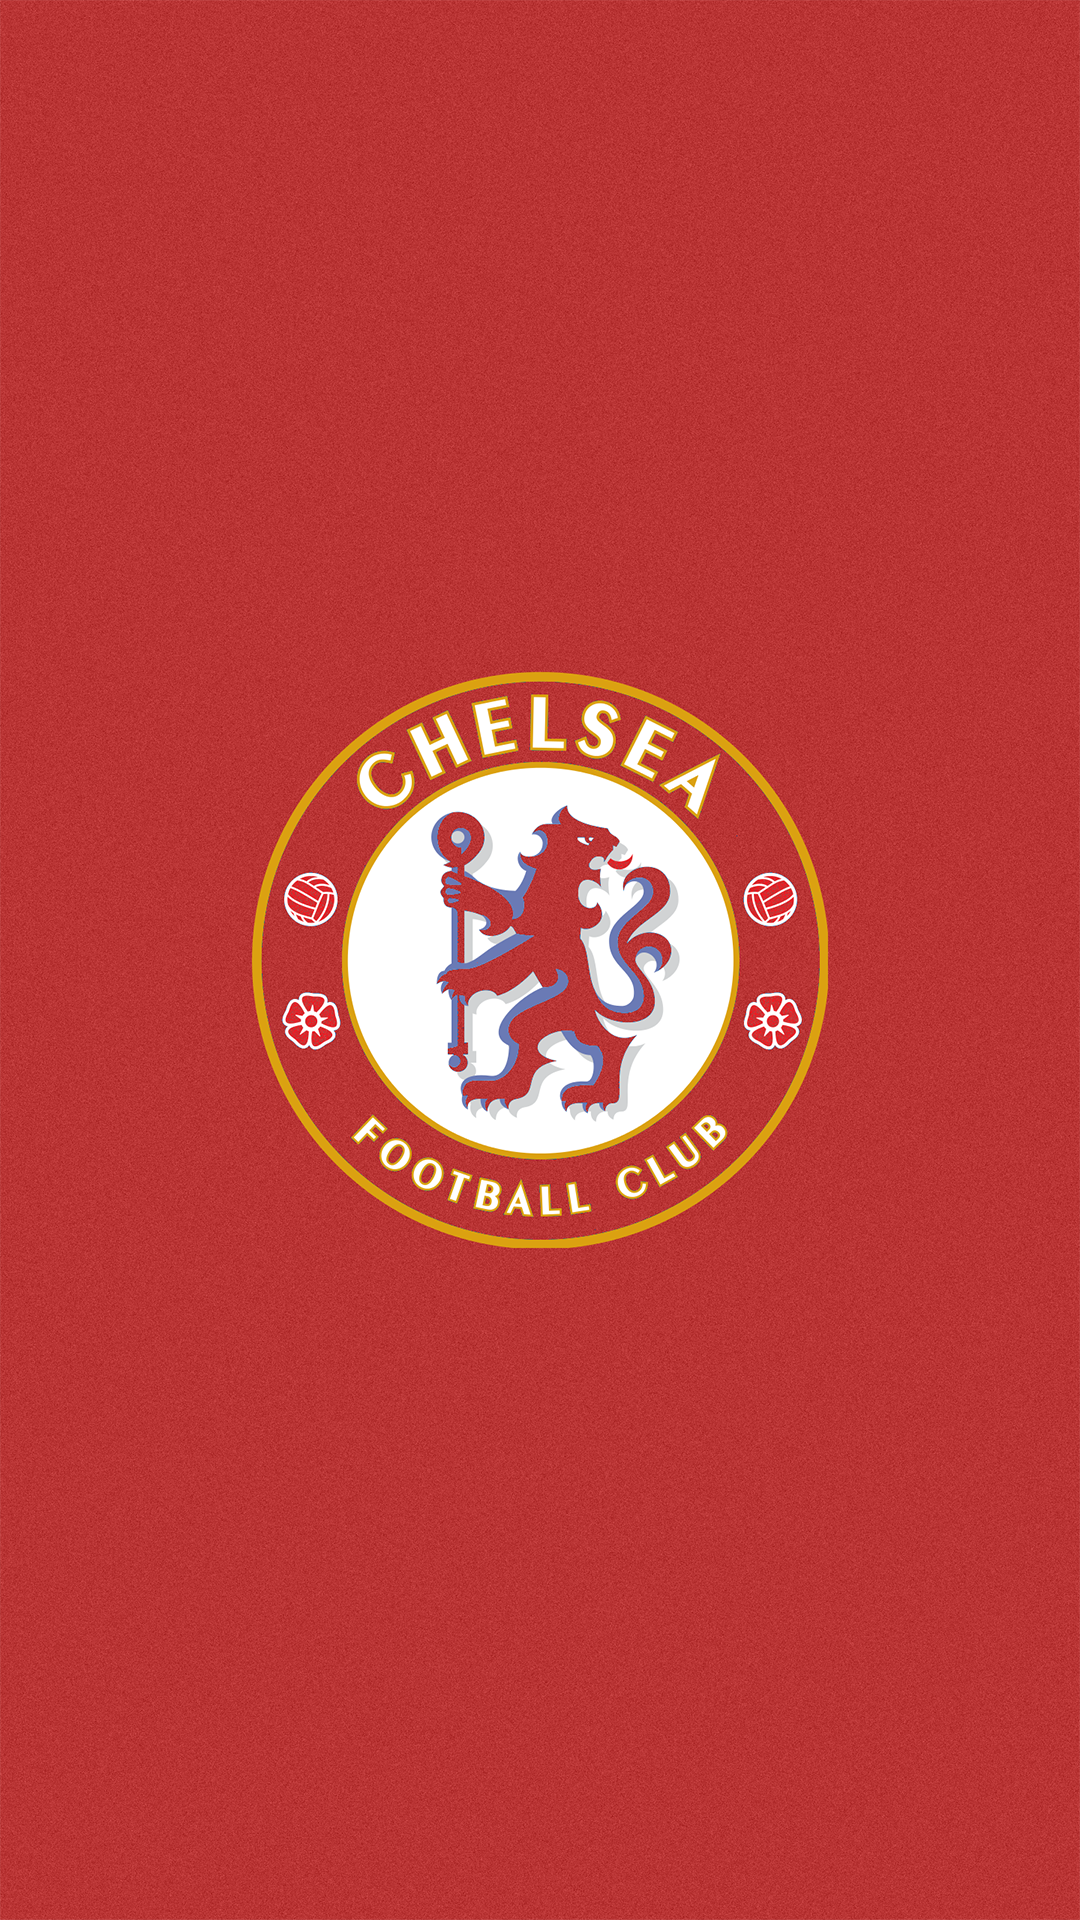 Wallpaper iphone chelsea -  Fc Chelsea Wallpapers Iphone 6s By Lirking20